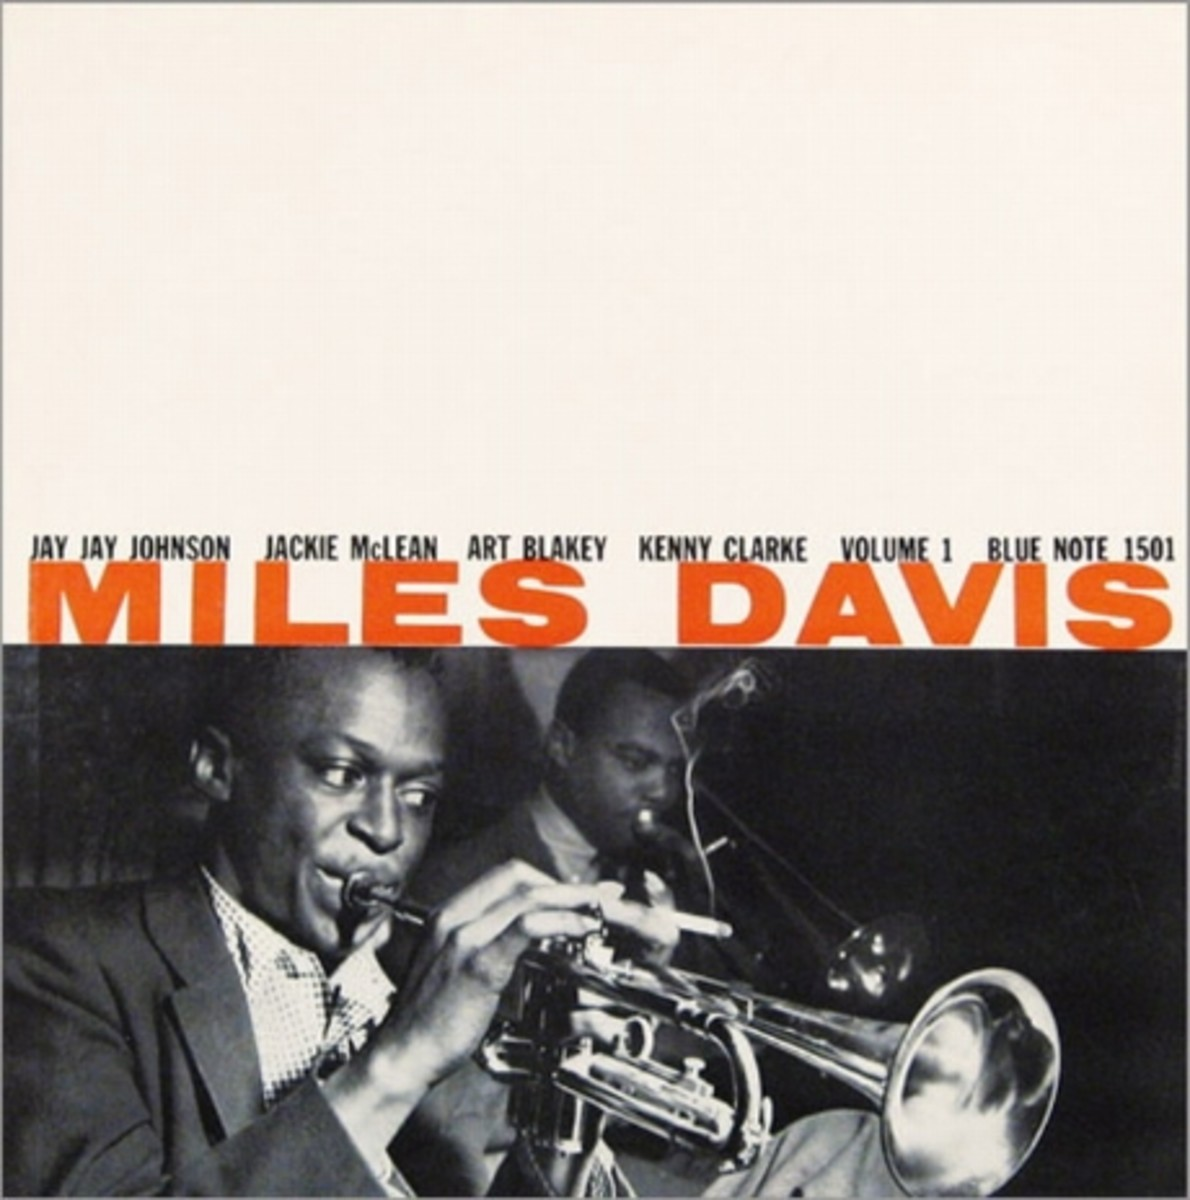 "Miles Davis, vol. 1 Blue Note Records BLP 1501 12"" LP Vinyl Record (1955)  Album Cover Design by John Hermansader,  Photo by Francis Wolff"